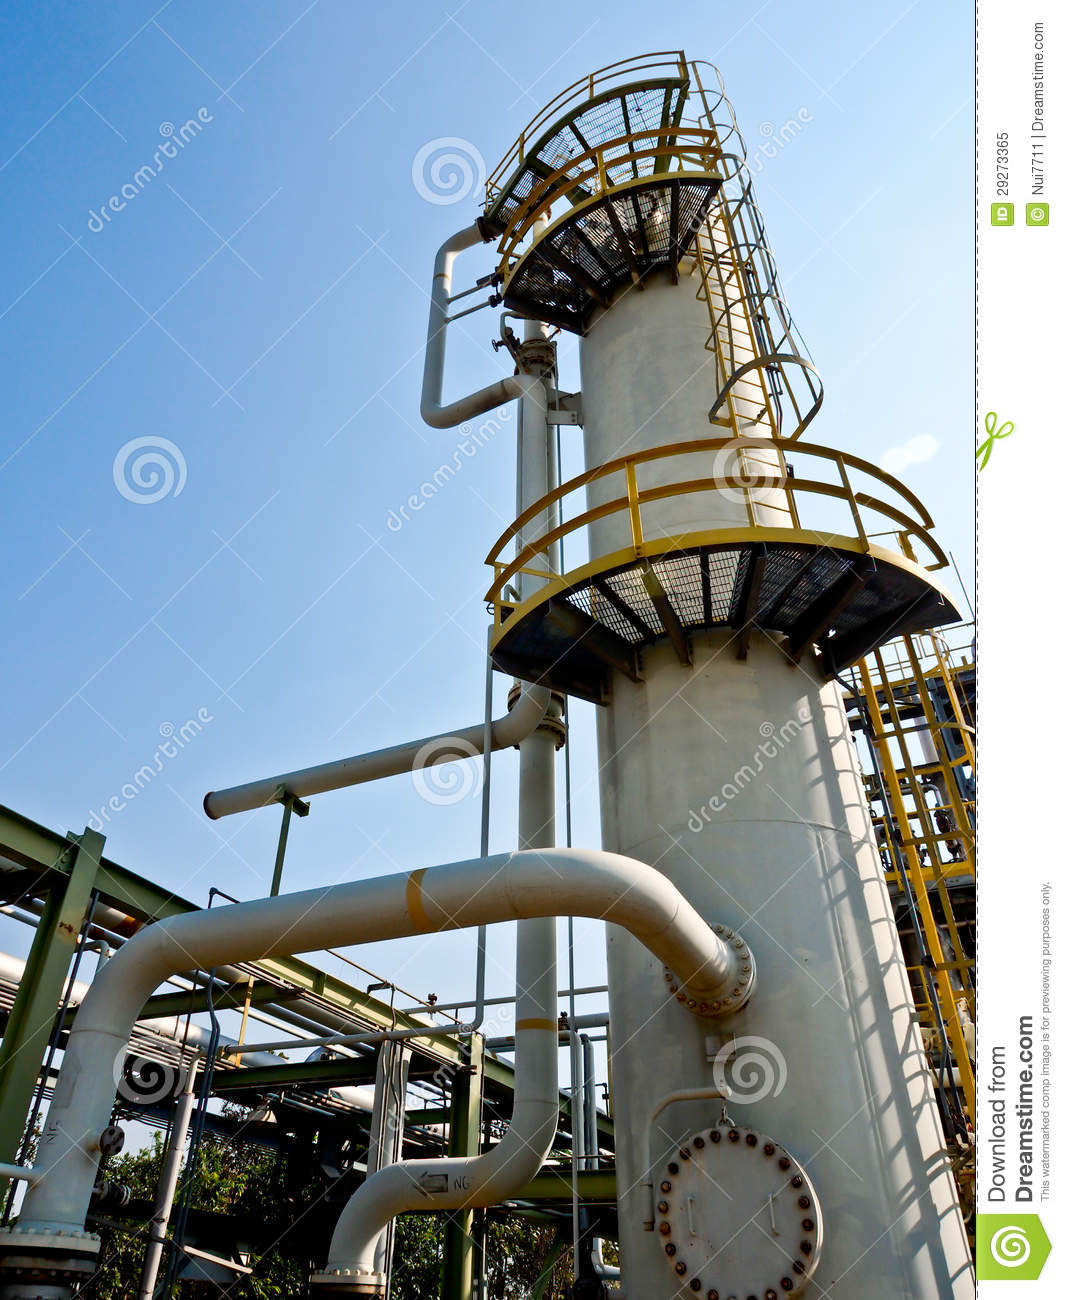 Distillation Column With Blue Sky Royalty Free Stock Photo.